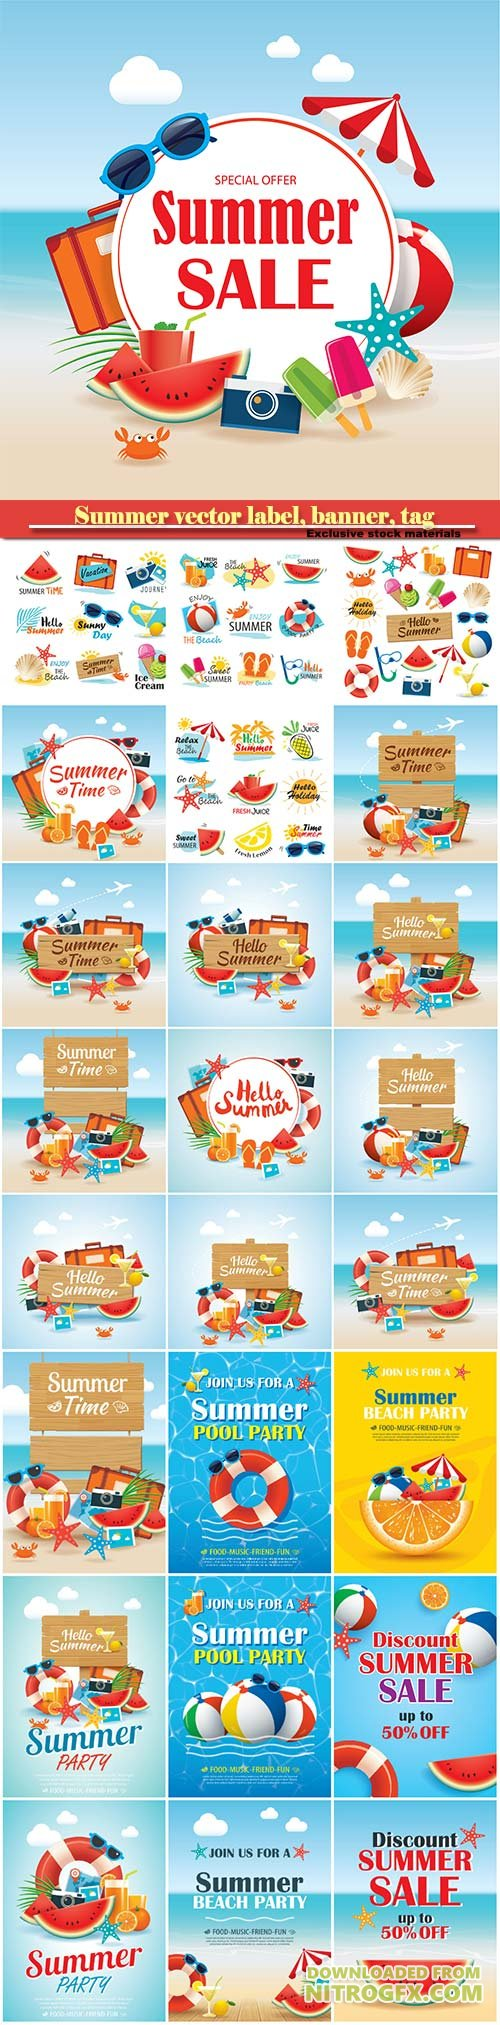 Summer vector label, banner, tag and elements background set